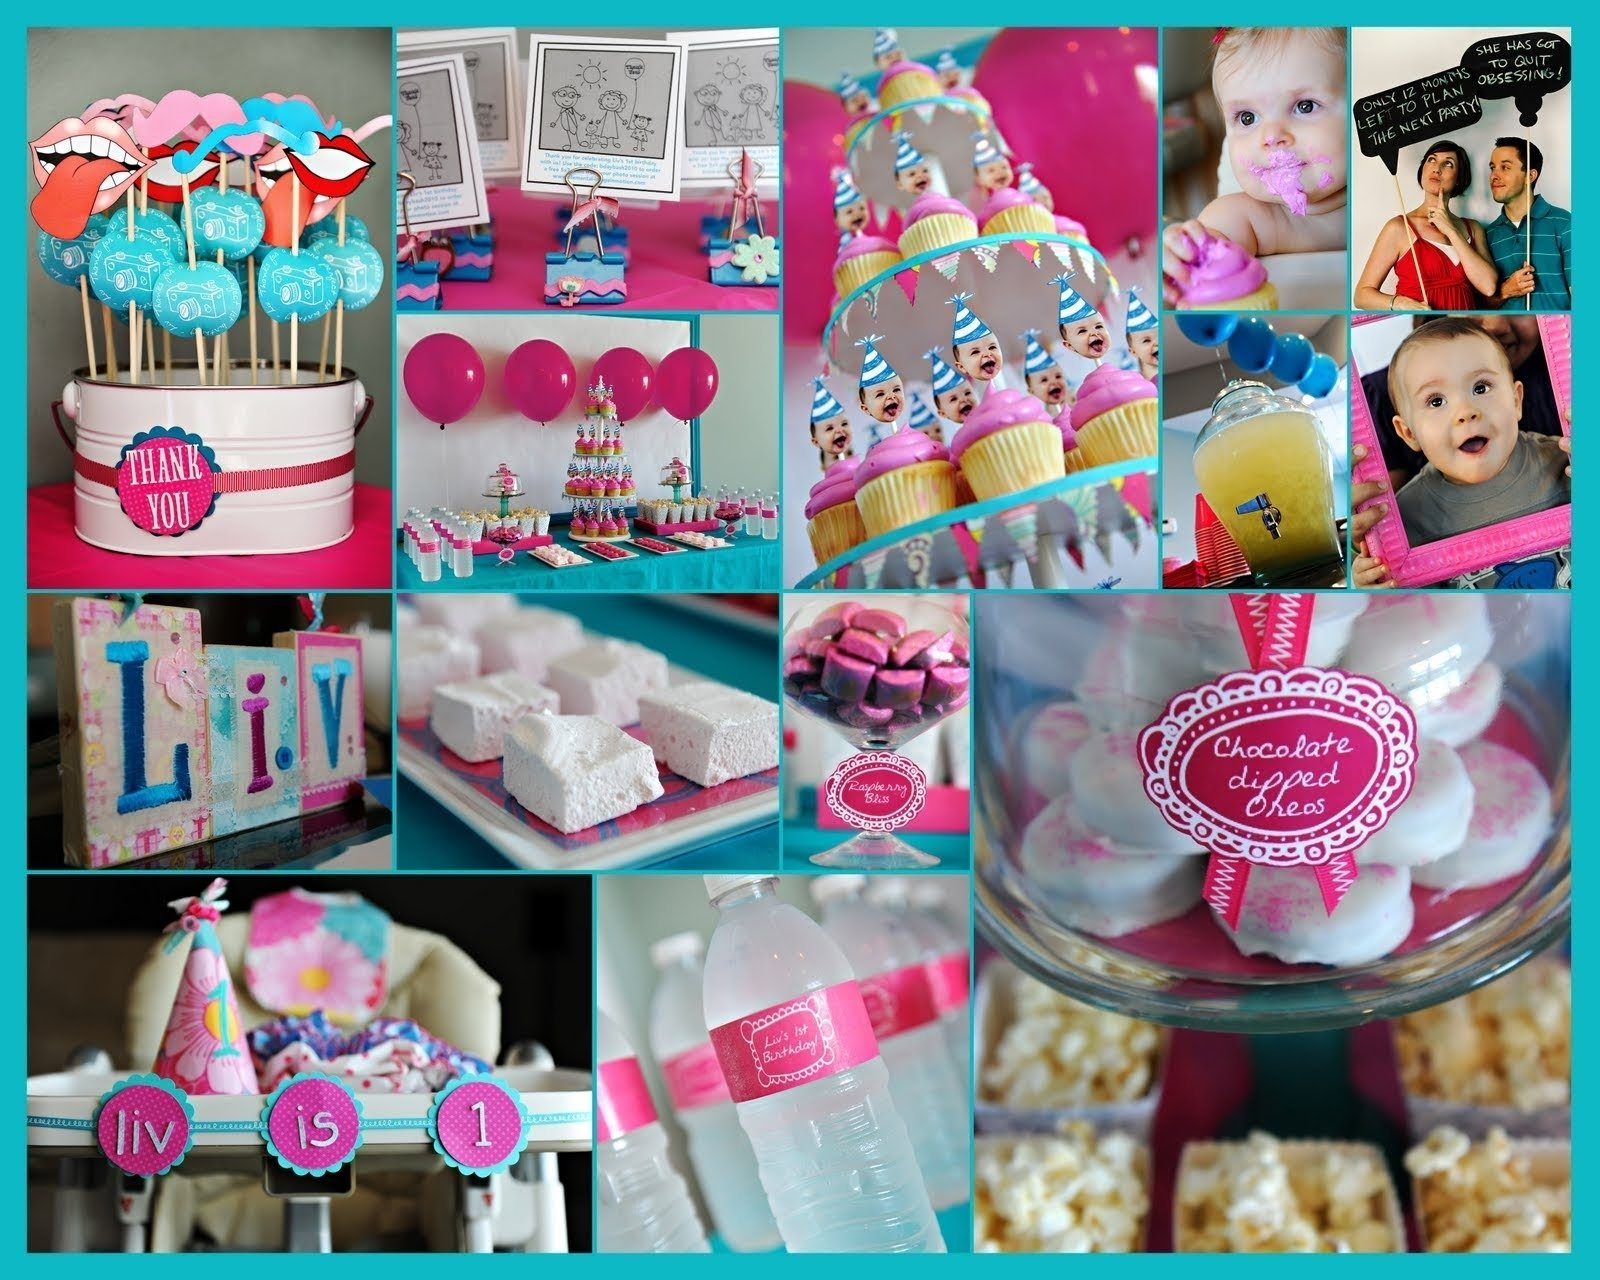 10 Beautiful One Year Old Party Ideas first birthday party ideas 1st birthday party ideas kids 1 2020